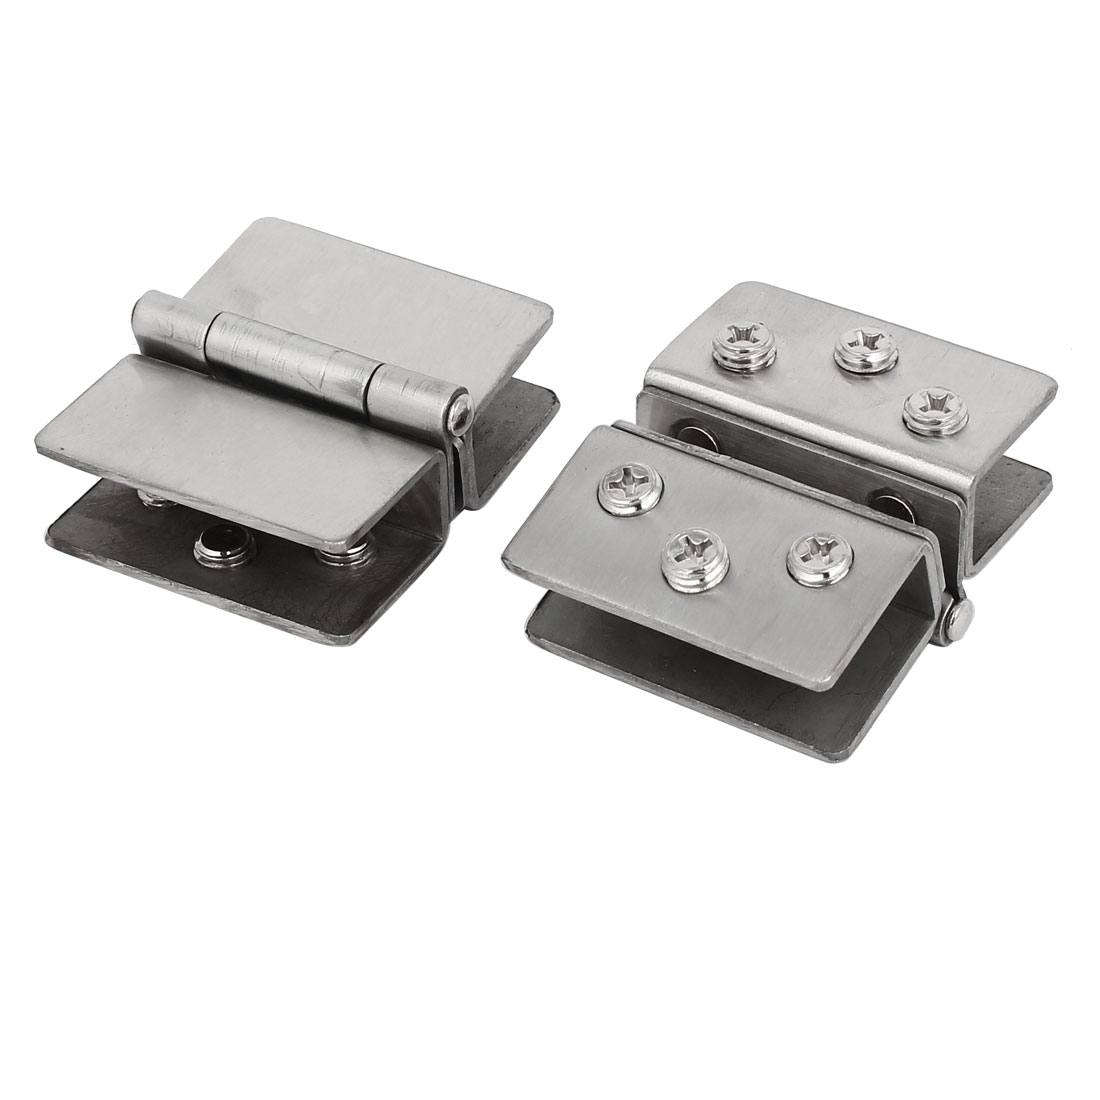 8-10mm Thickness Adjustable Glass Door Double Clip Clamp Hinges 2PCS - image 4 of 4